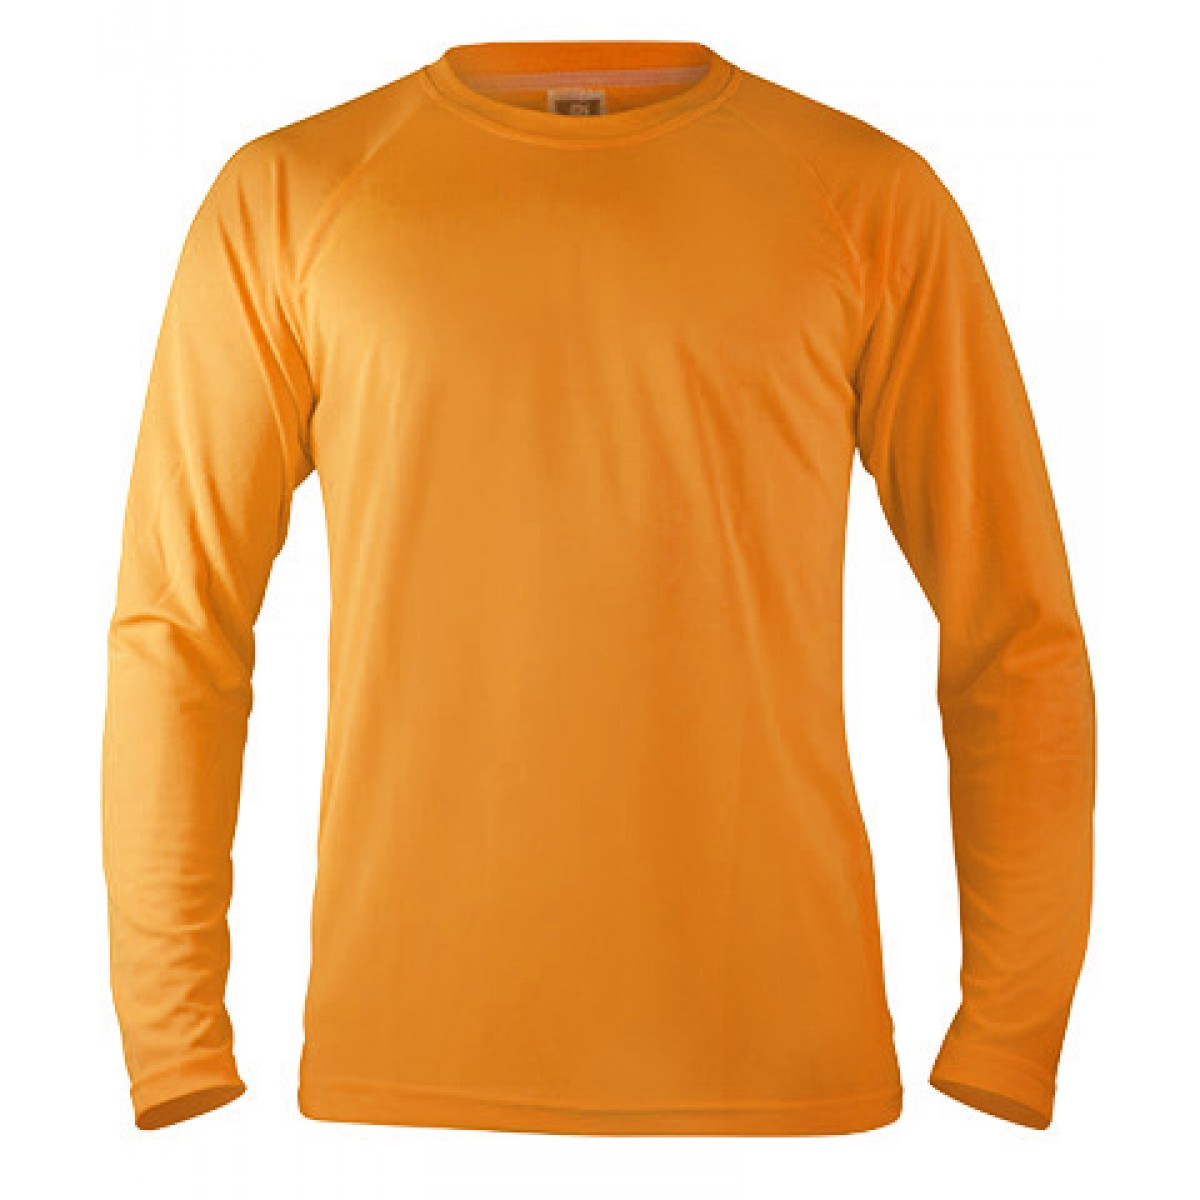 Long Sleeve Mesh Performance T-shirt-Neon Orange -2XL